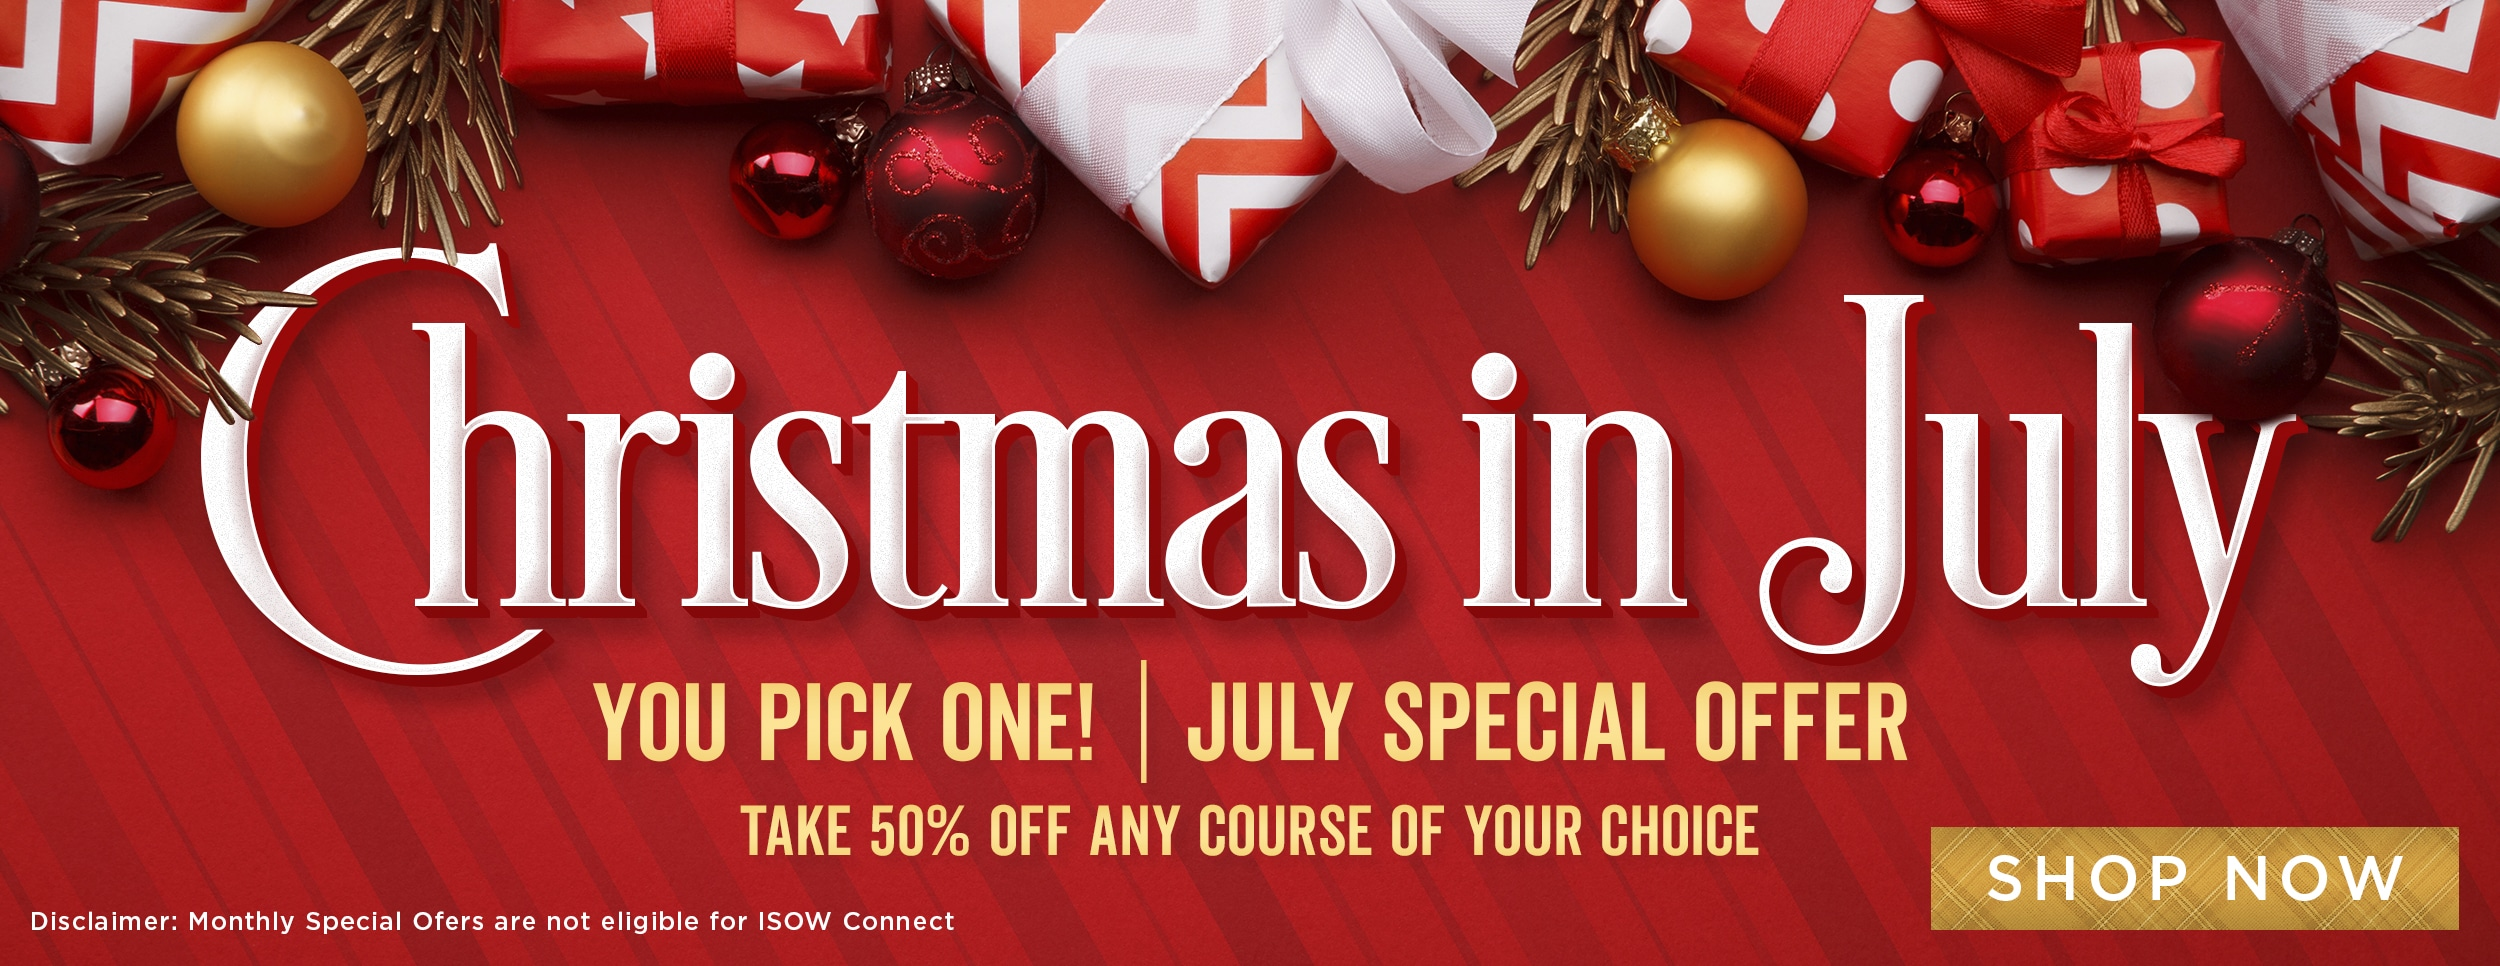 Christmas in July Special Offer - You Pick One 50% Off